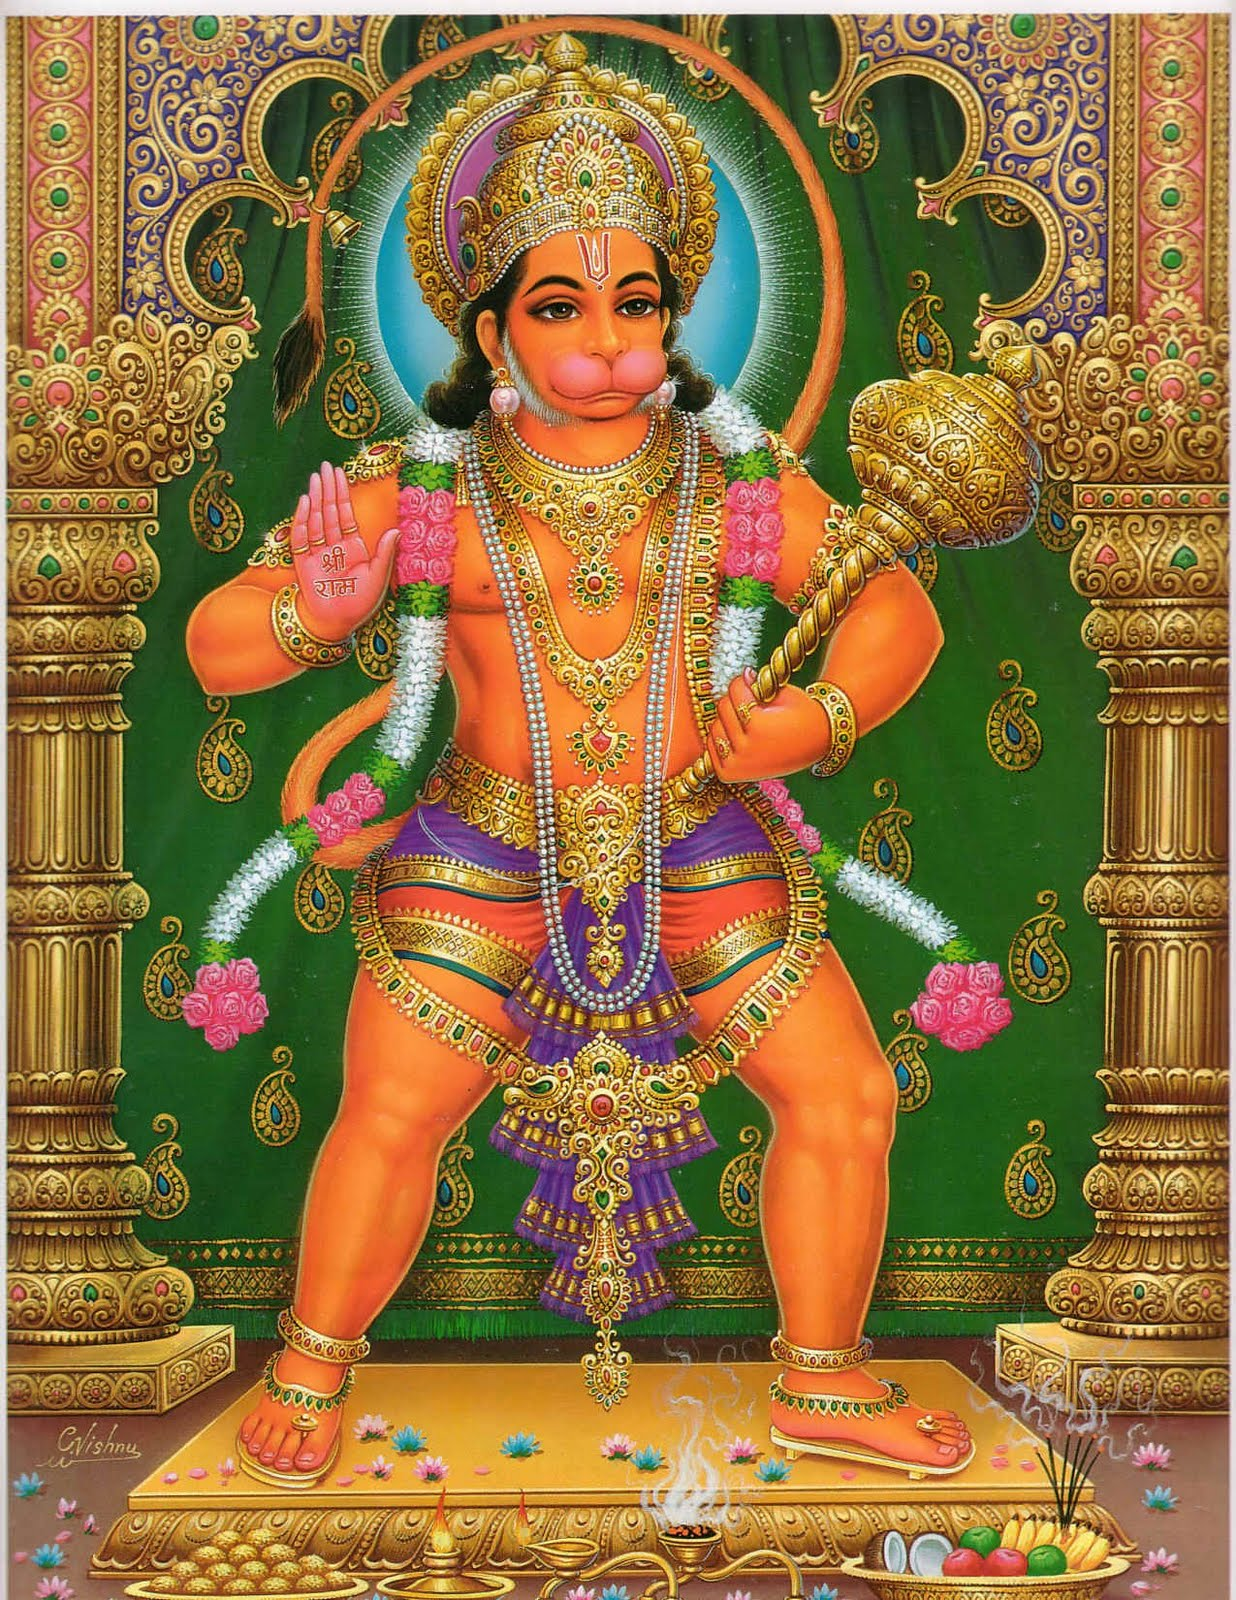 Jai Hanuman Wallpapers, images and pictures | Latest Hanuman Wallpaper ...